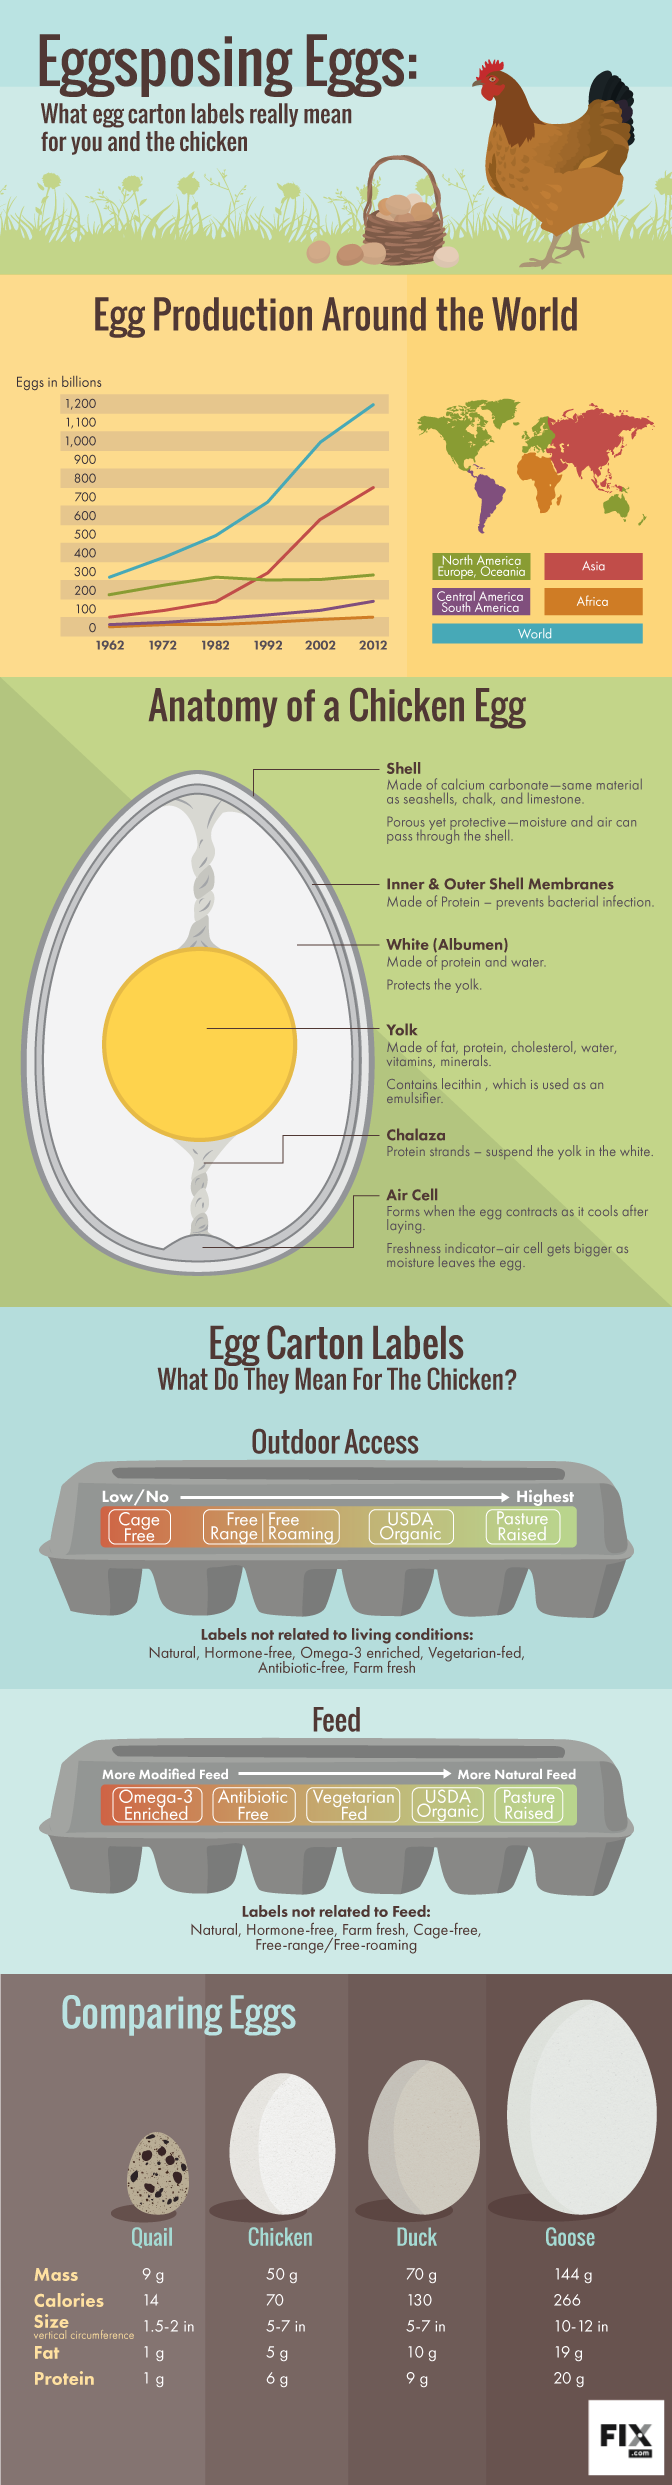 Eggsposing Eggs What Egg Carton Labels Really Mean for You and the Chicken #infographic